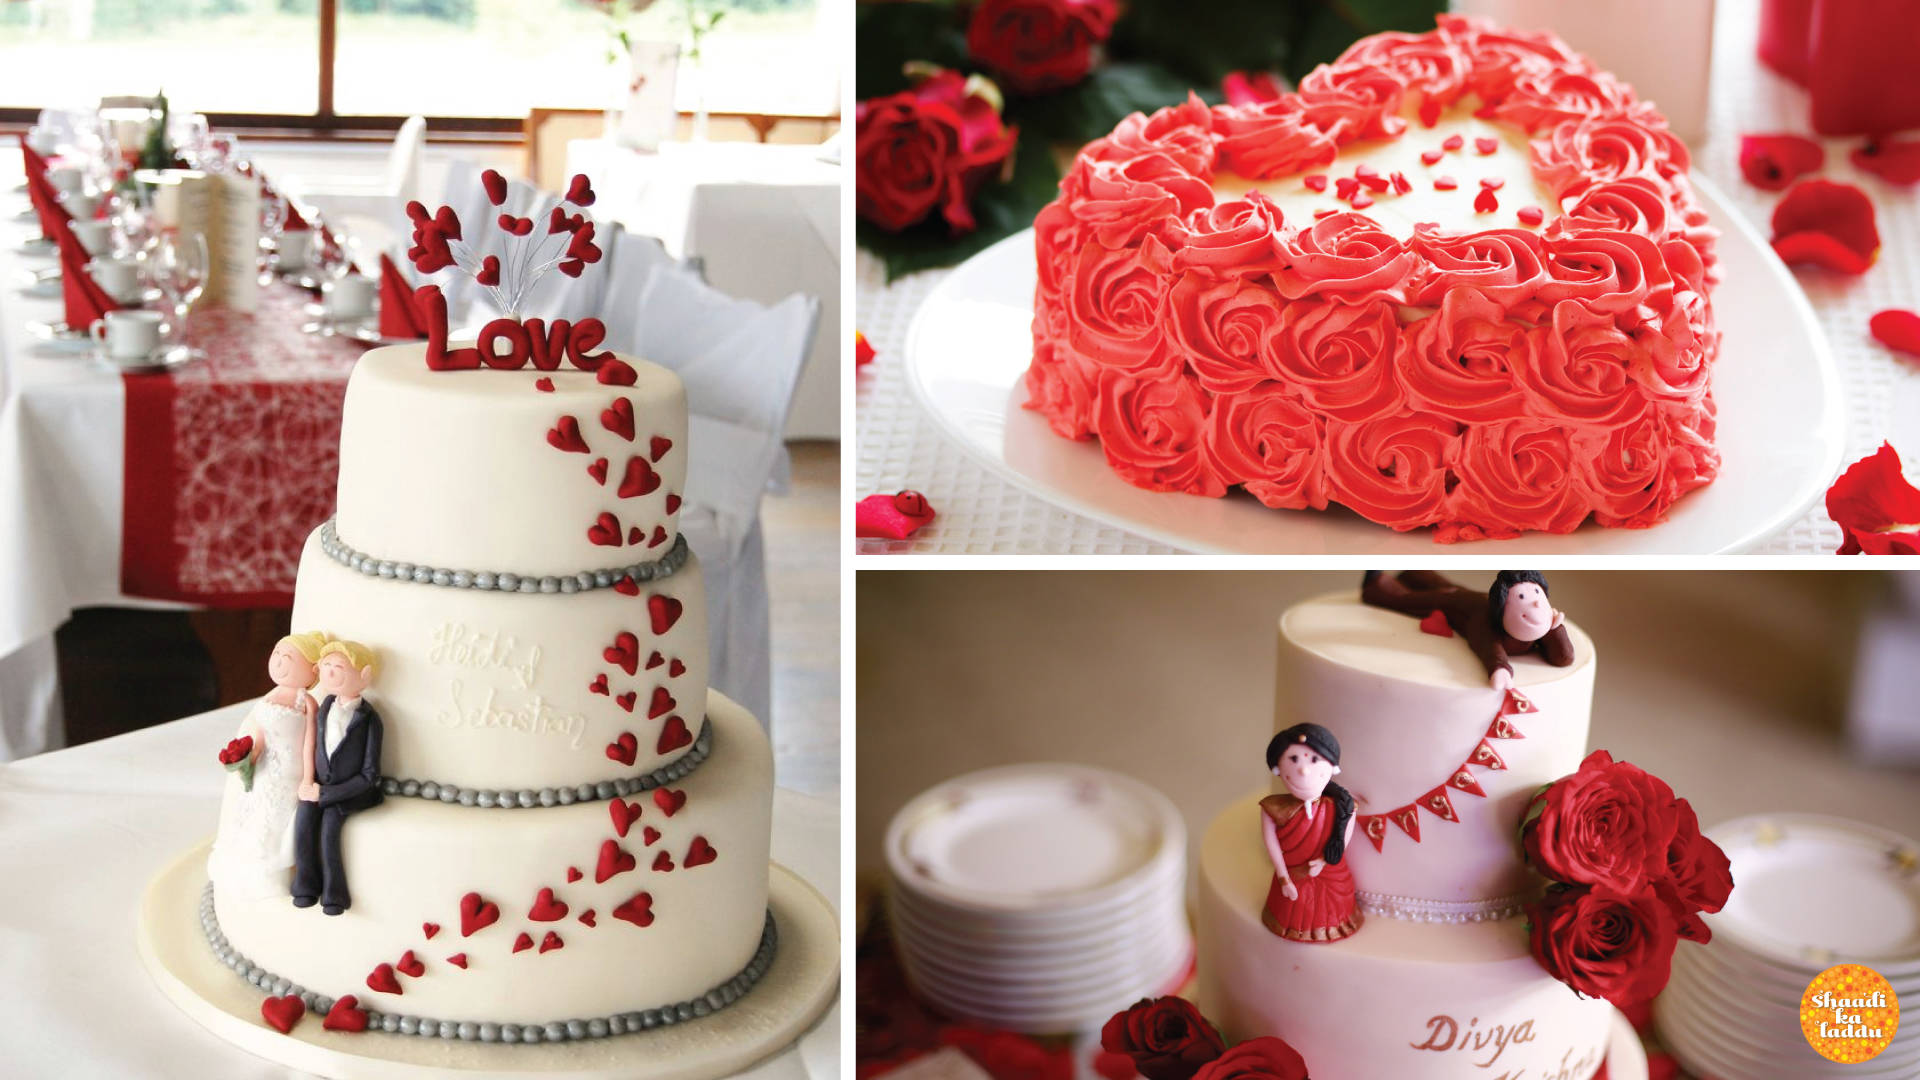 Cakes from Bakery Art, Jaipur